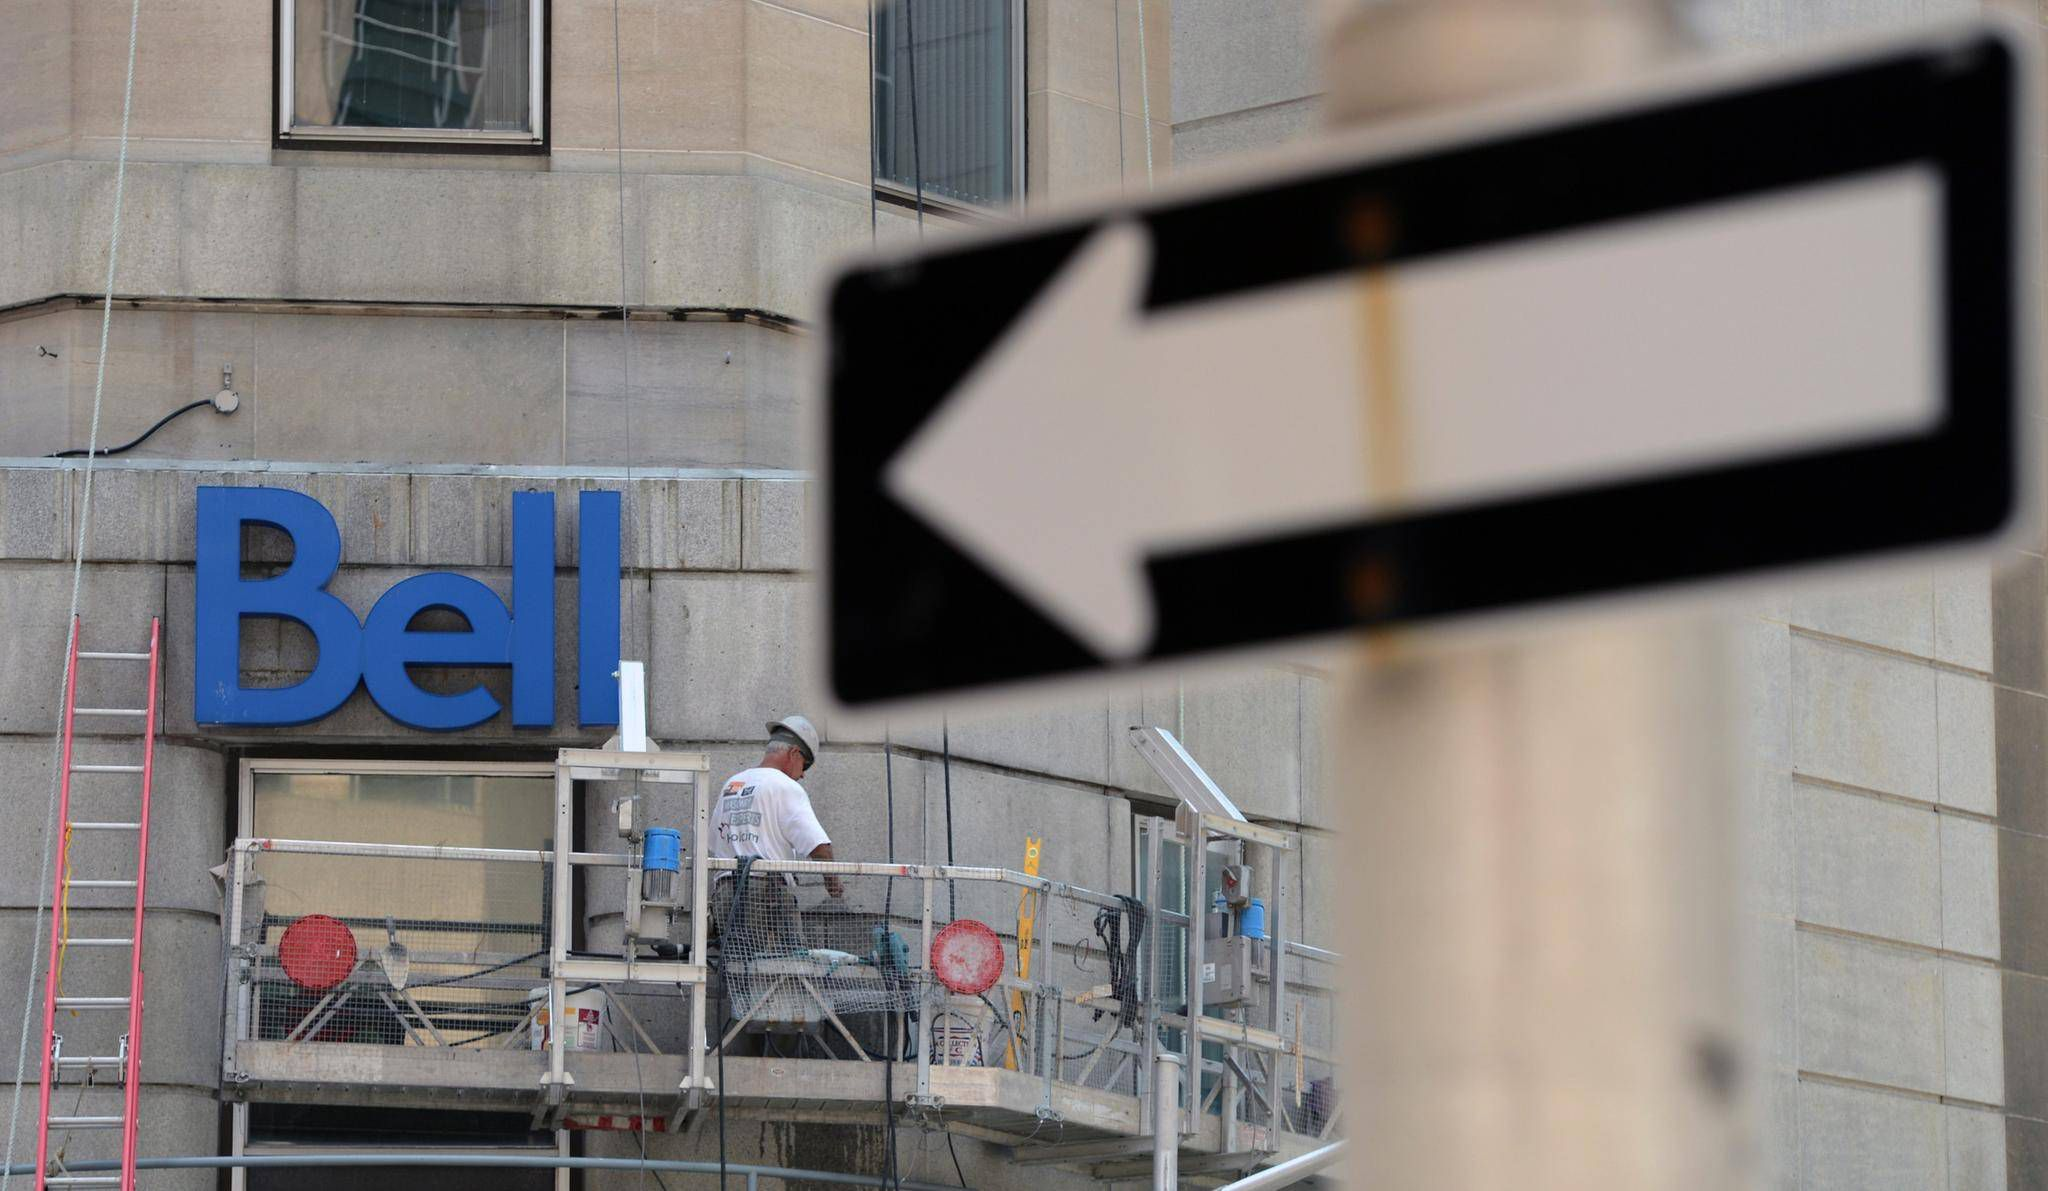 Bell Media lays off employees amid restructuring, citing